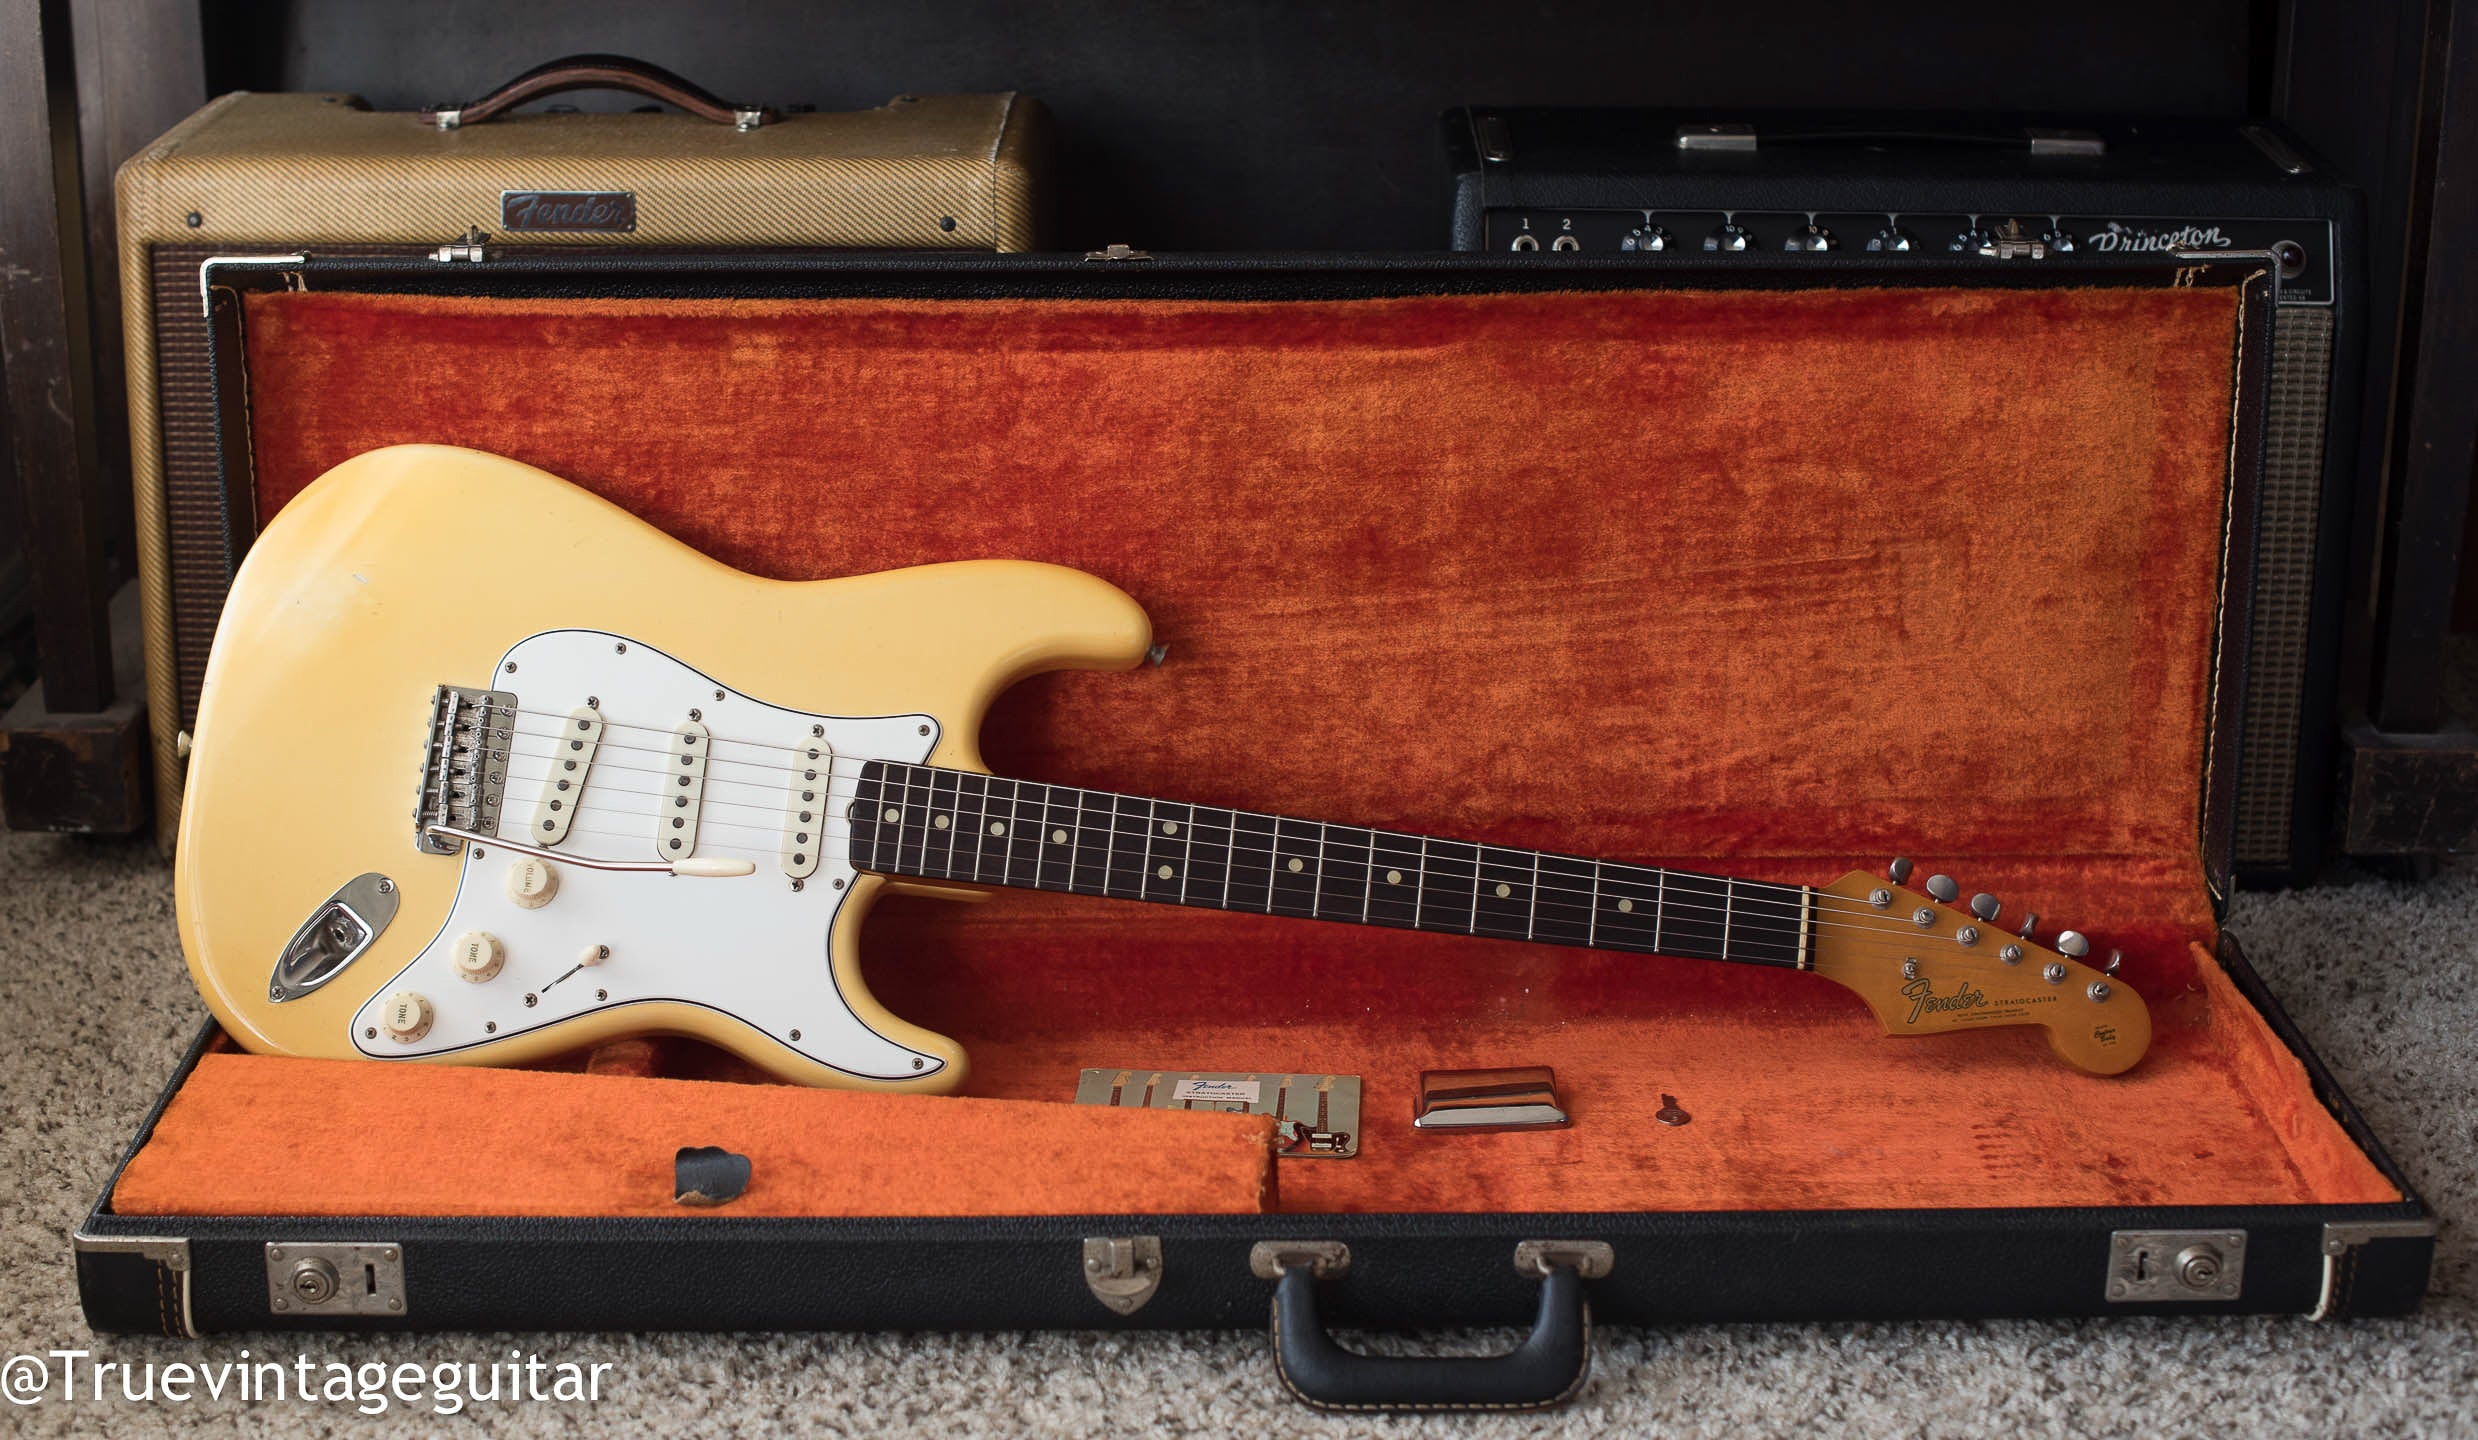 Vintage 1965 Fender Stratocaster Olympic White electric guitar